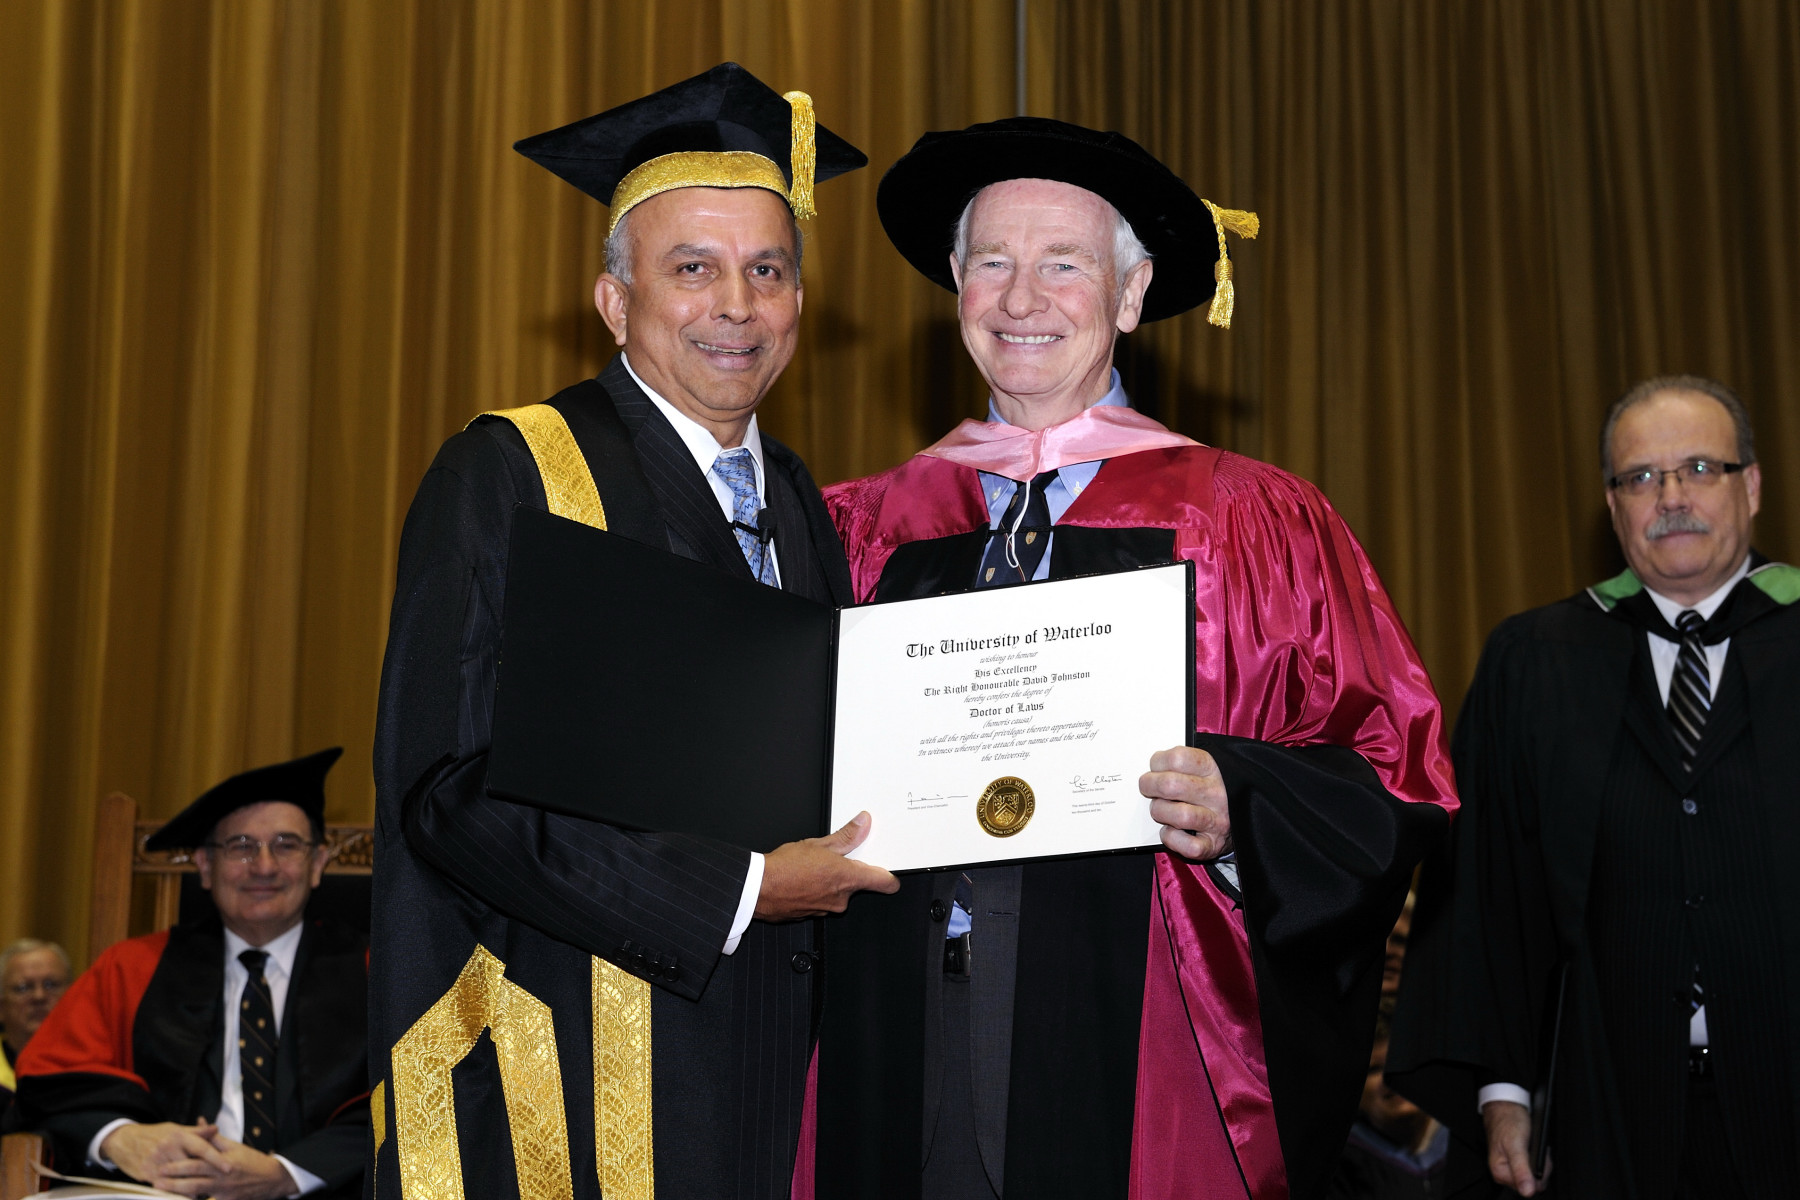 The University Chancellor confered the Doctorate of Law honoris causa to the Governor General.